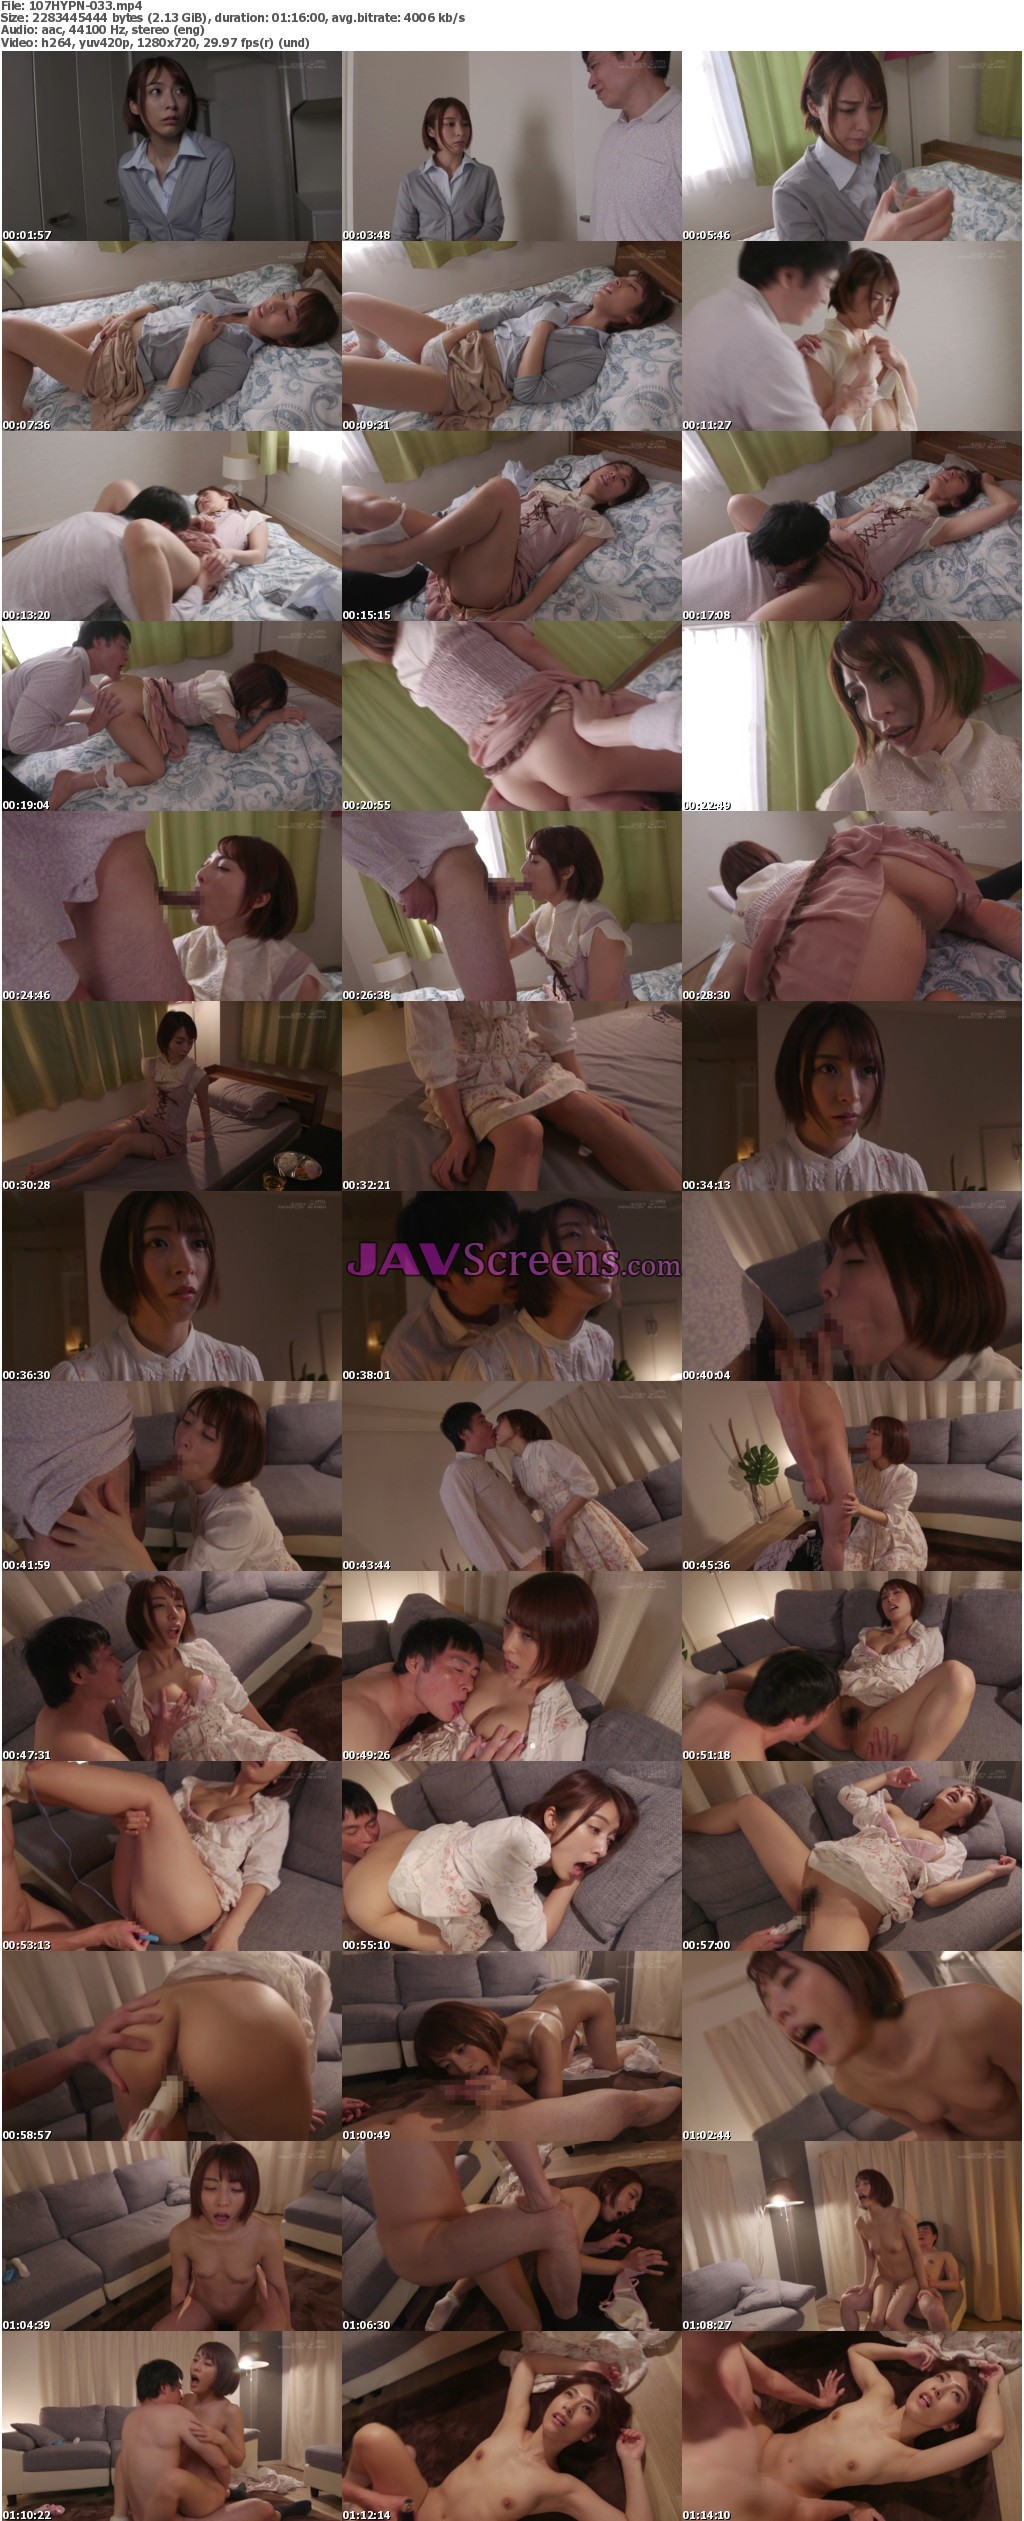 HYPN-033.jpg - JAV Screenshot